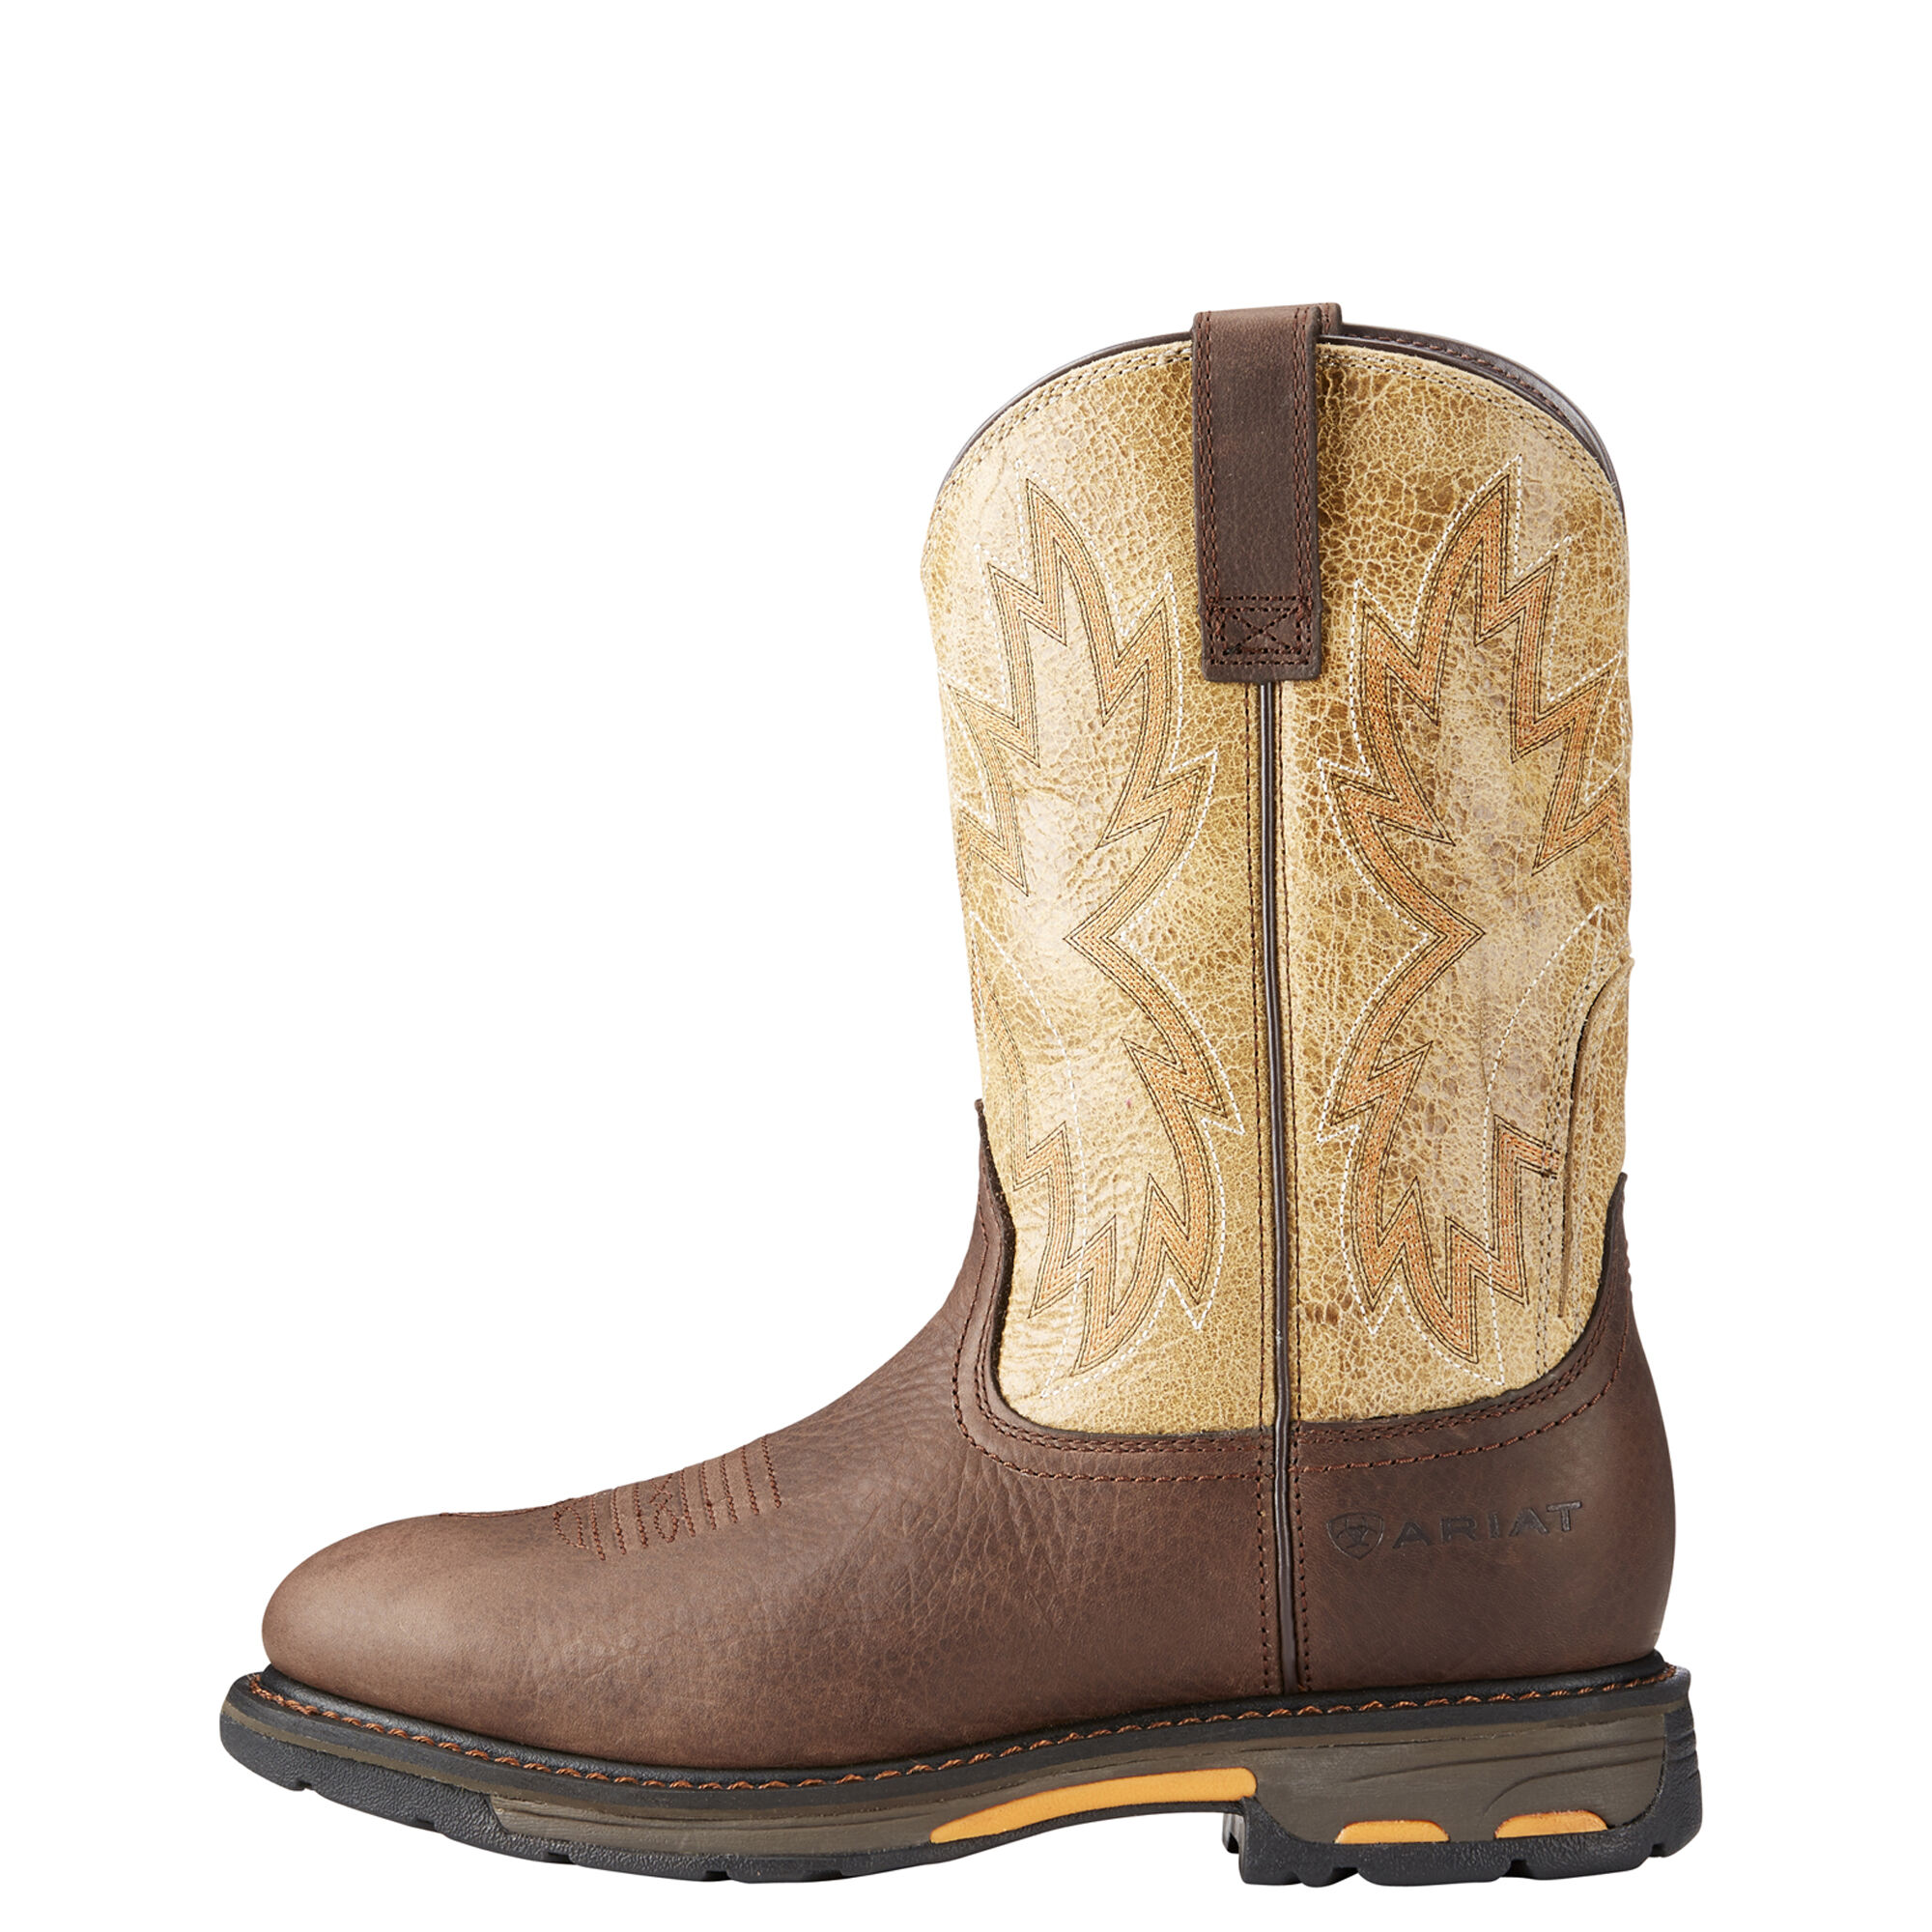 Men's Ariat Workhog Raptor Work Boot, Size: 9.5 D, Earth Leather